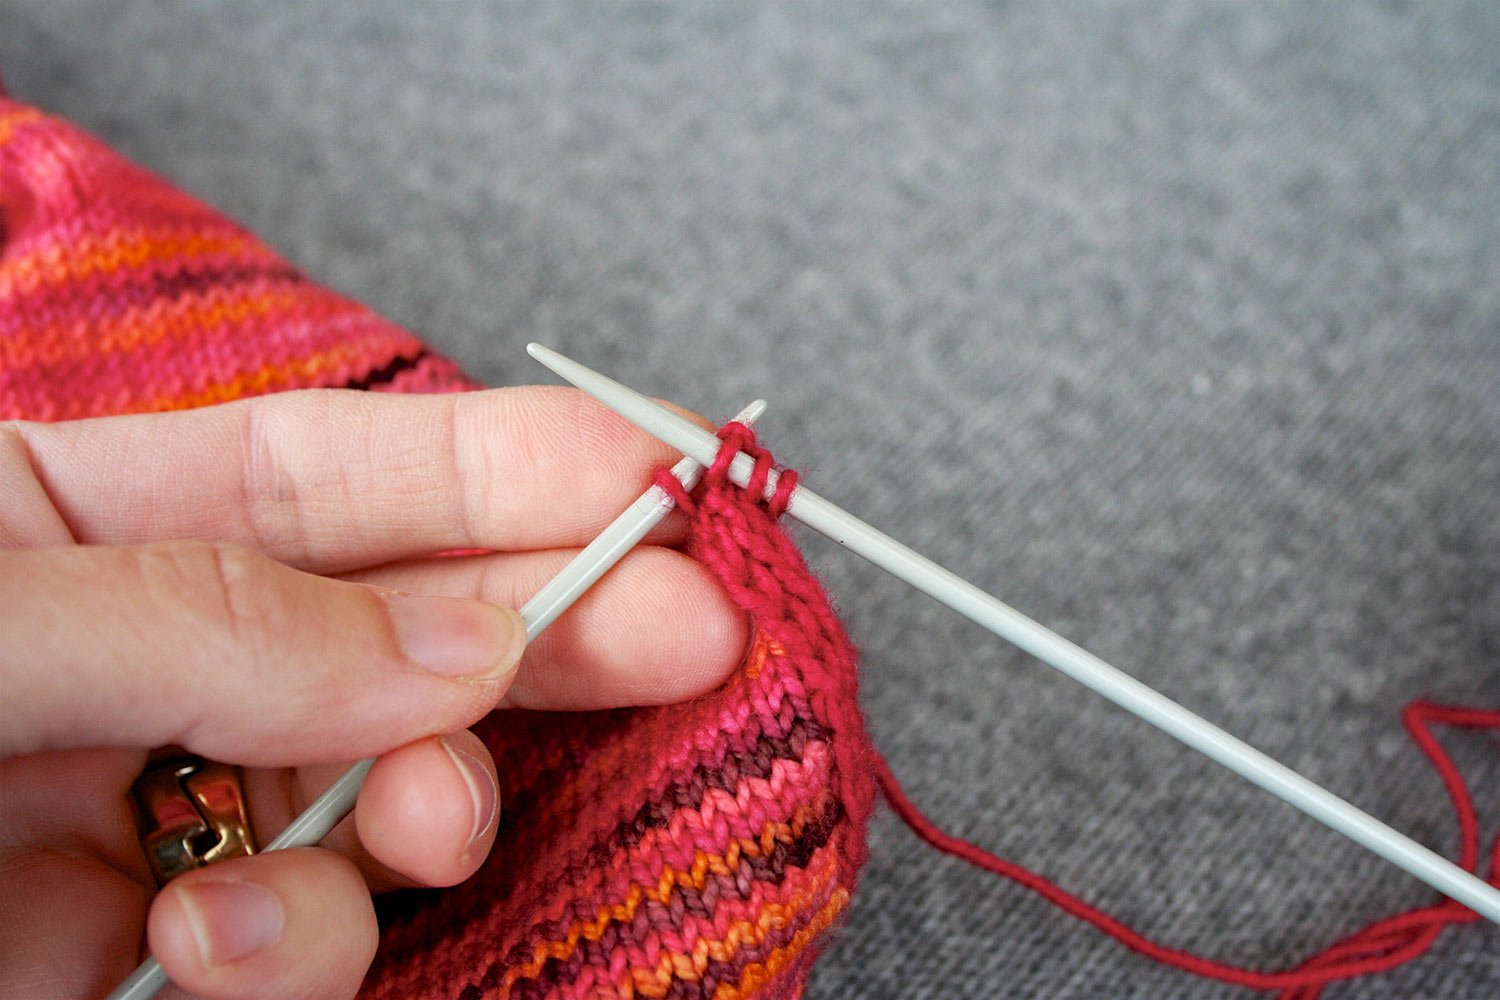 Three stitches on right needle and fourth stitch on left needle; below needles the applied i-cord can be seen along the edge of a piece of knitting.